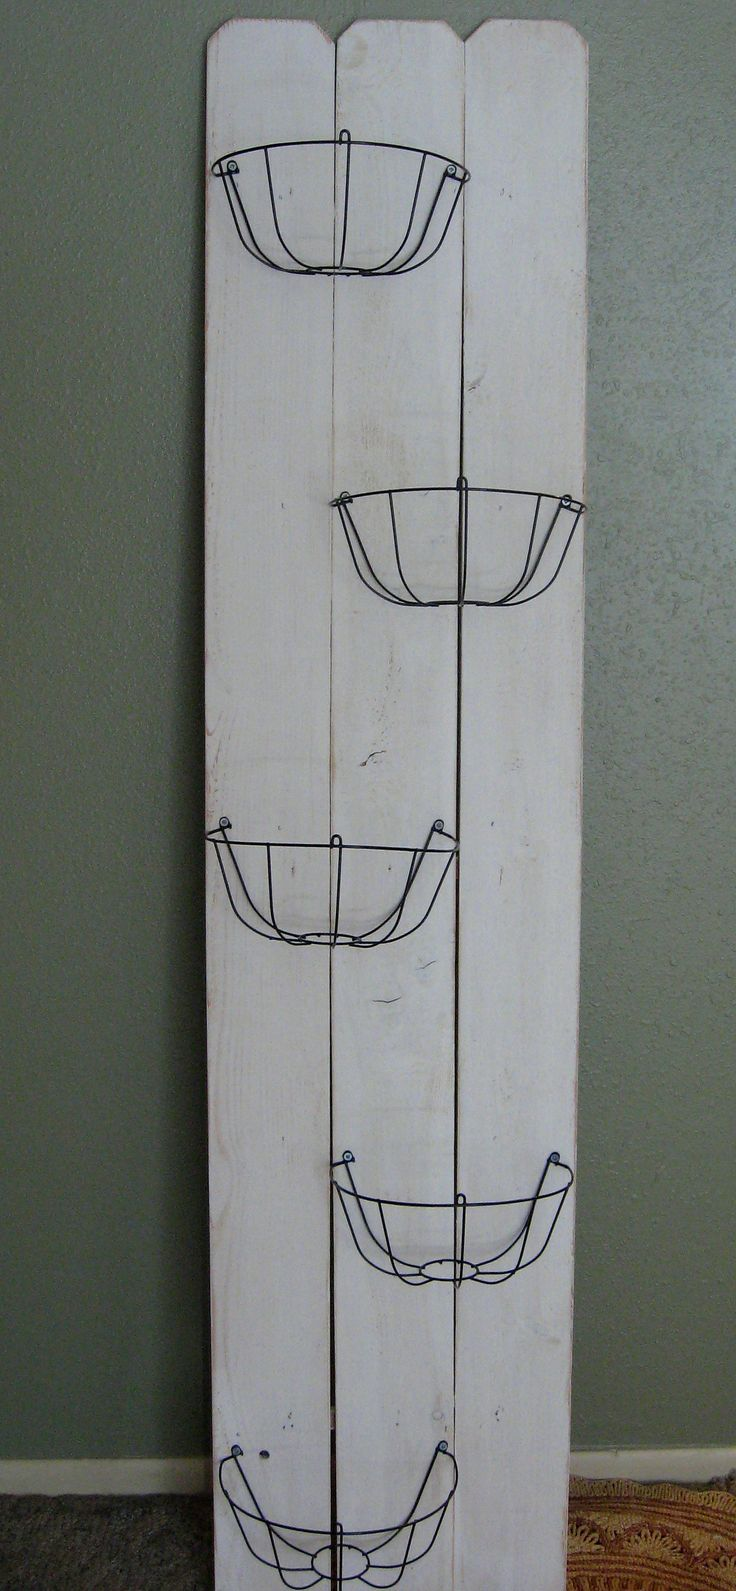 Easy peasy DIY wire basket storage or display... maybe add a name/saying above!